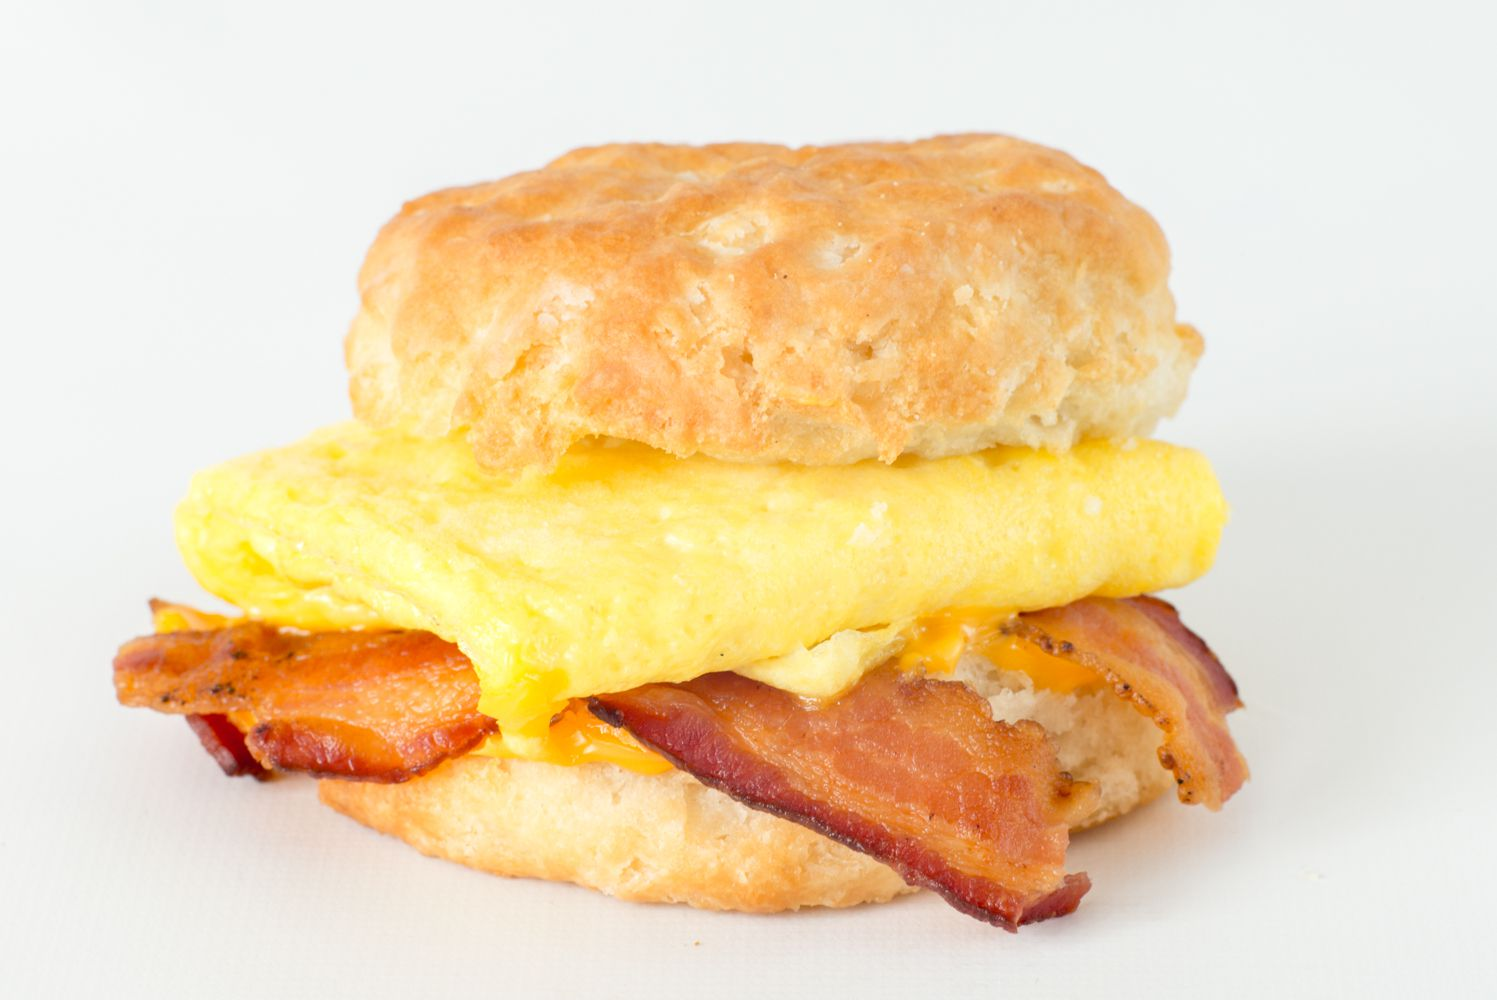 mcdonalds egg and cheese biscuit calories